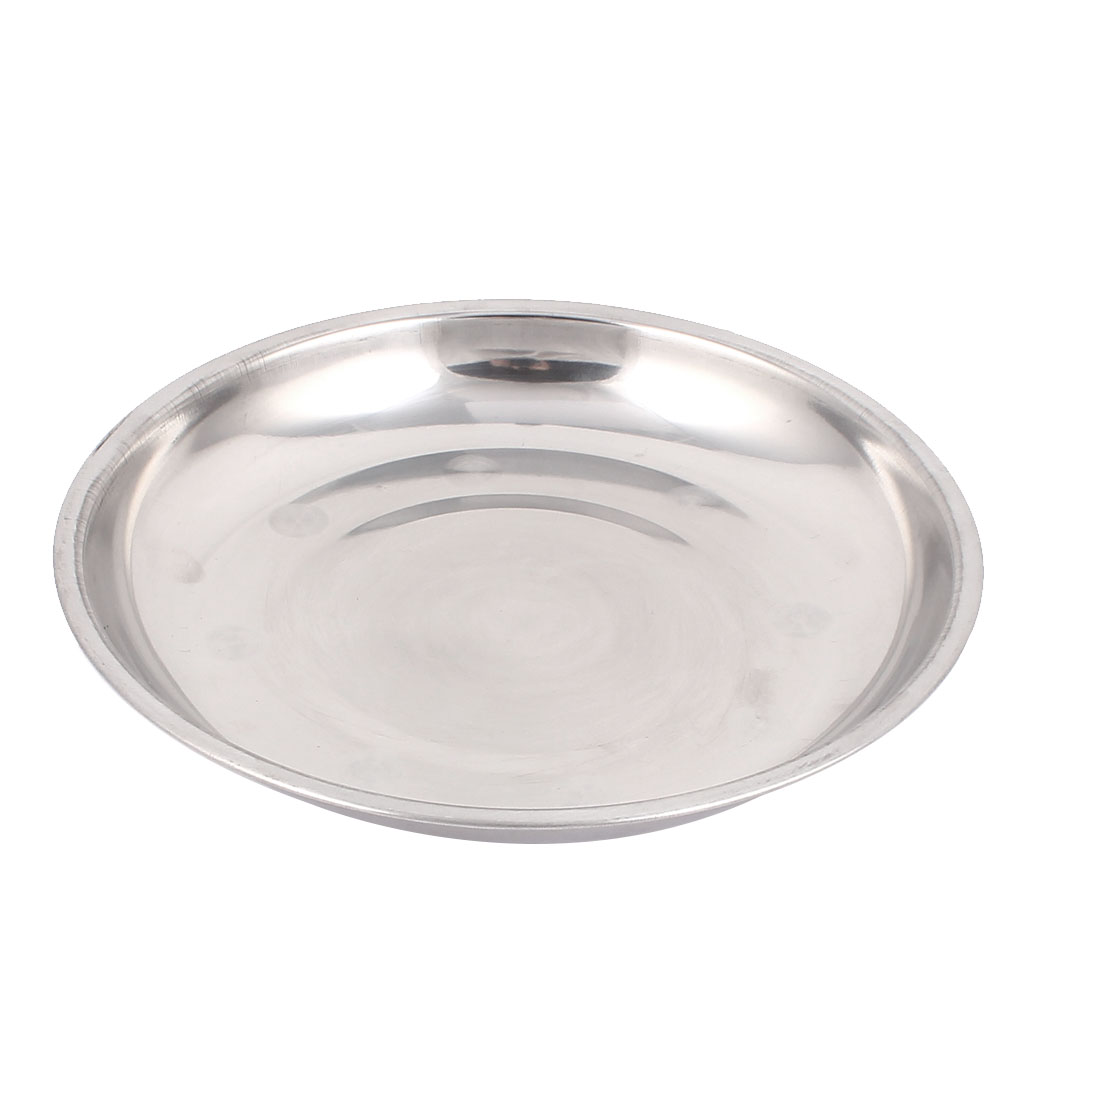 7.7 Inch Diameter Kitchen Round Shaped Strainless Steel Dish Plate Silver Tone